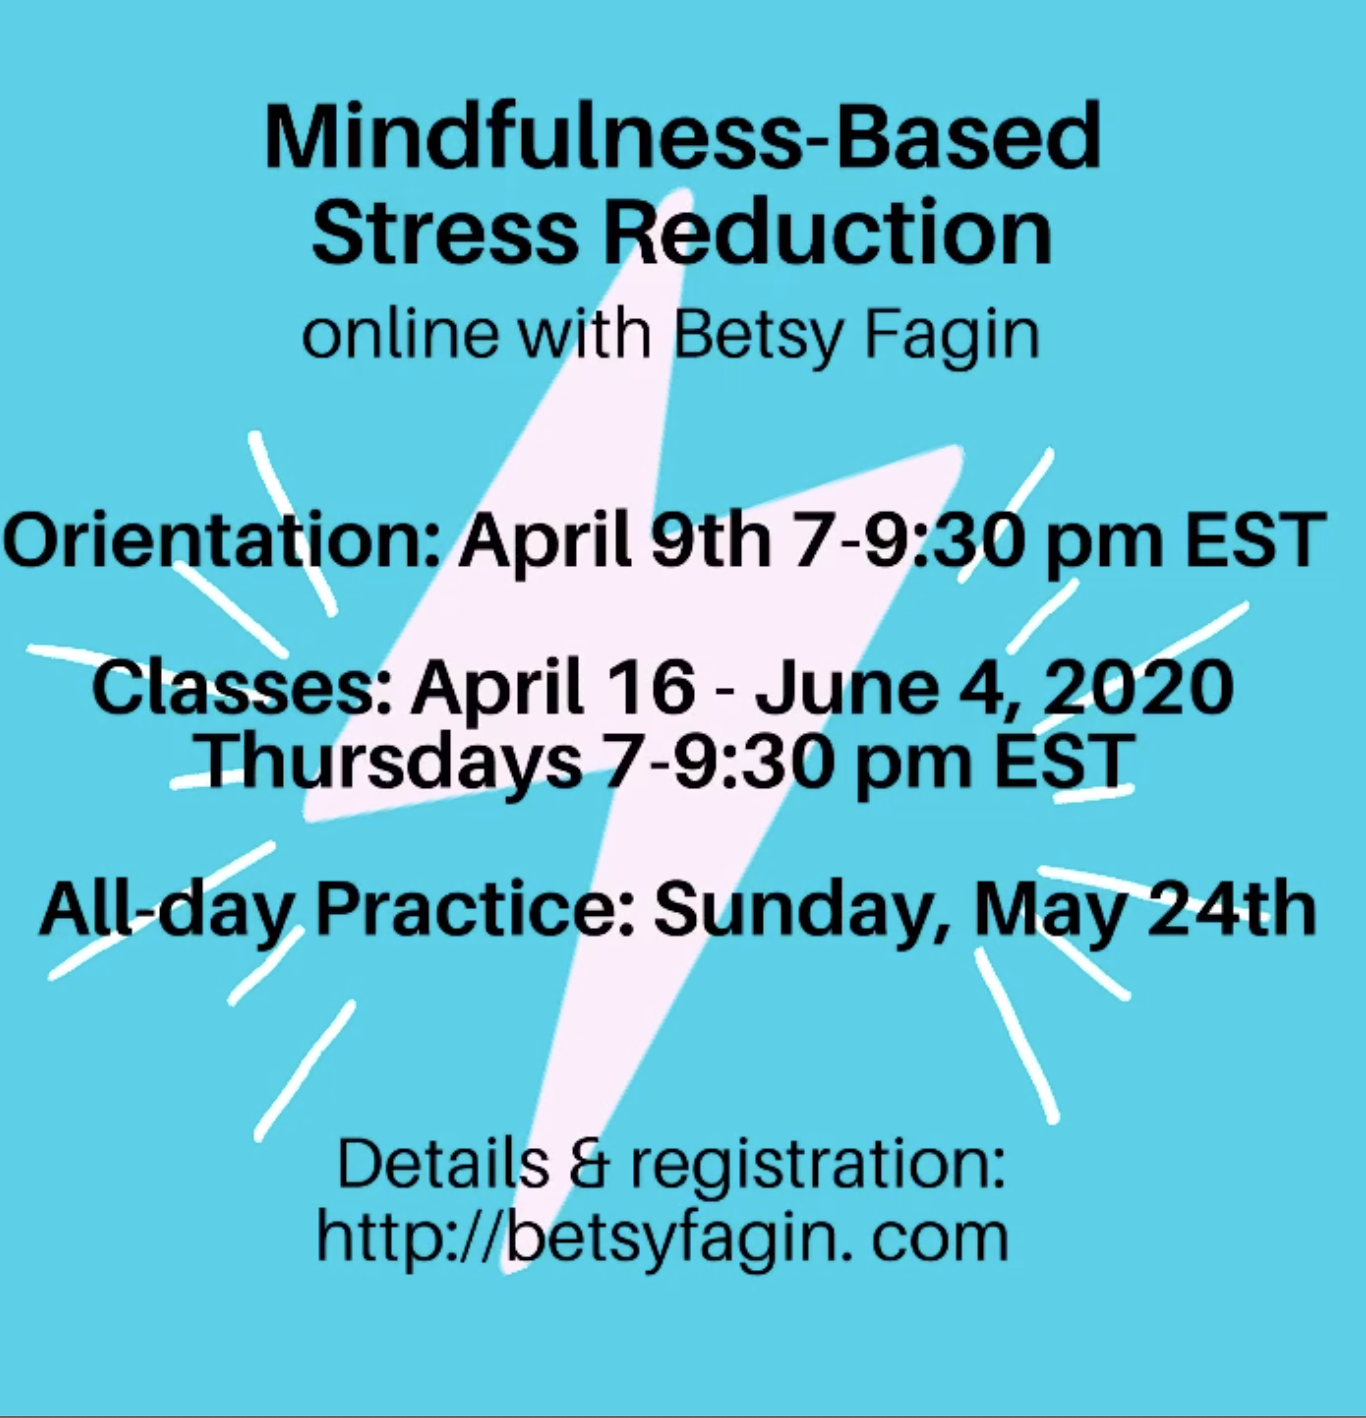 Mindfulness-Based Stress Reduction online with Betsy Fagin April 9th-June 4th, 7-9:30 pm EST. Details & registration: http://betsyfagin.com